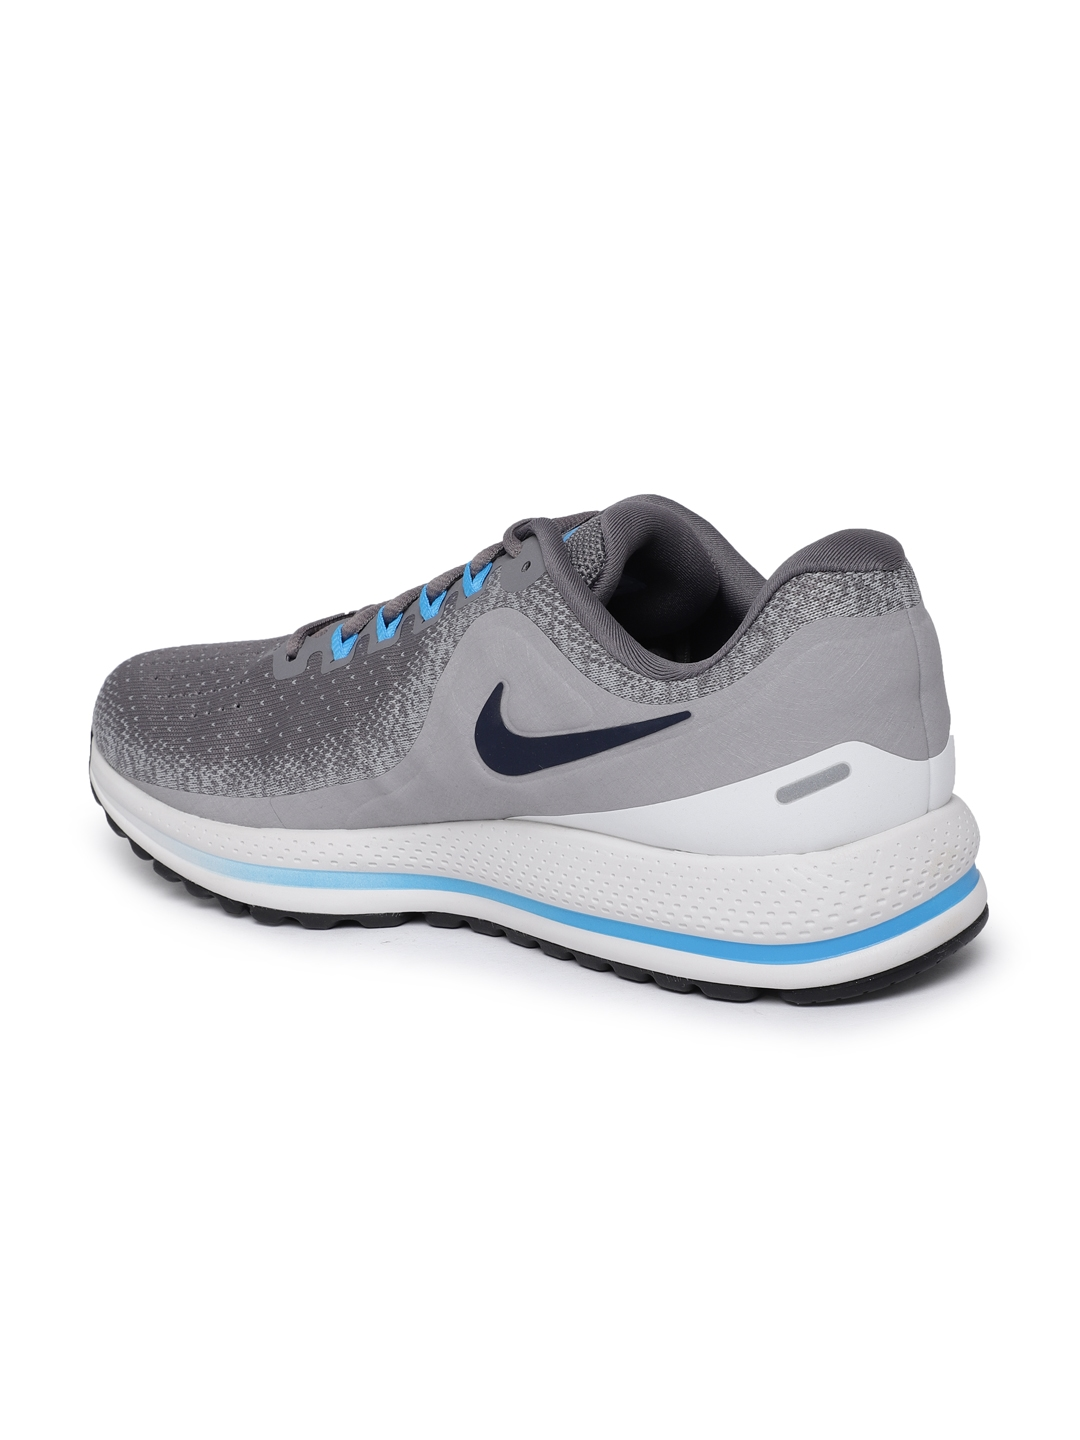 Men Grey Shoes Nike Melange Zoom Sports Air Vomero 13 Buy